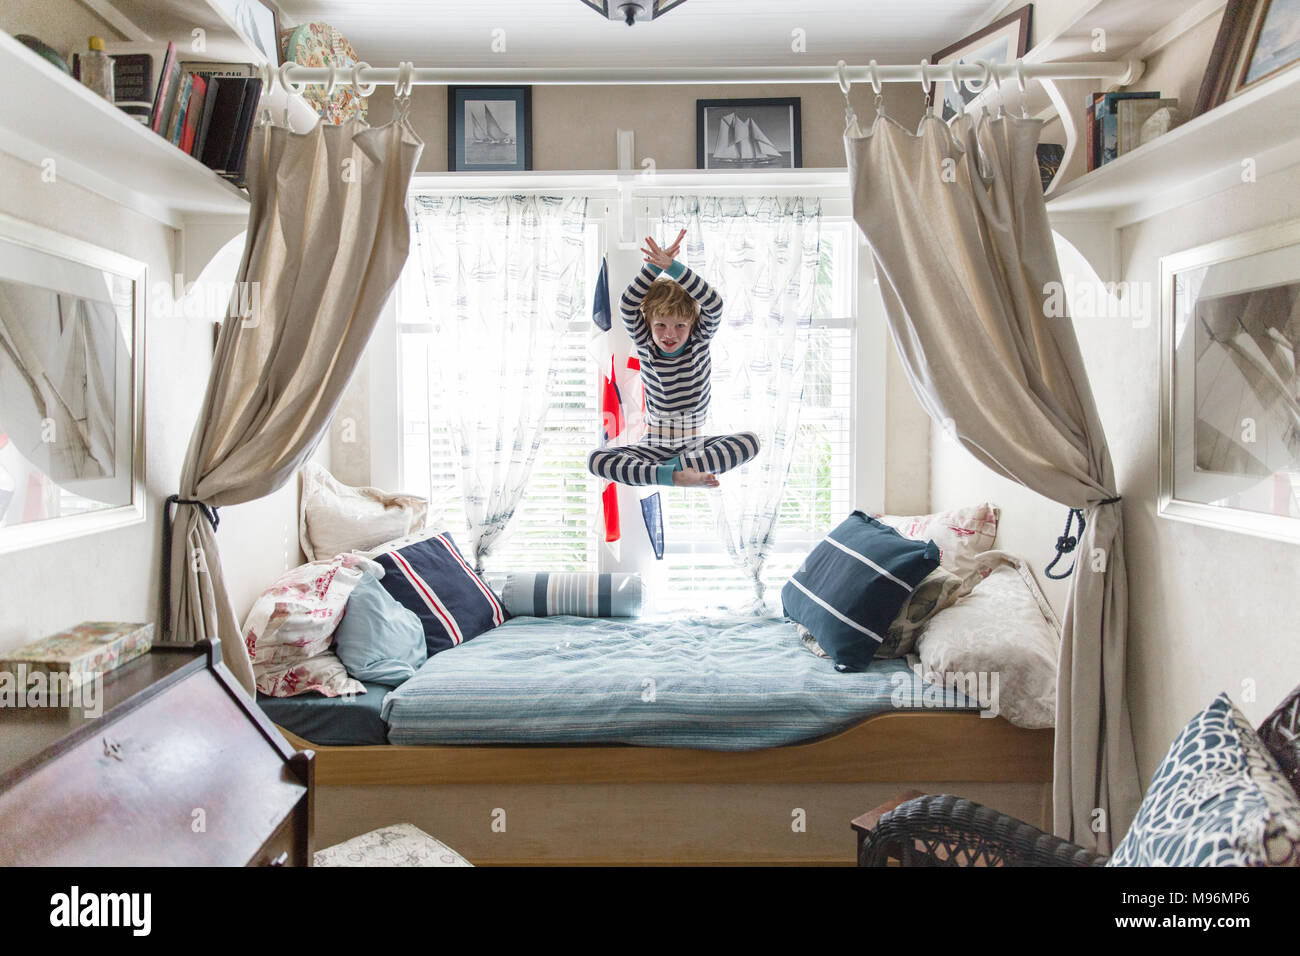 Boy jumping on bed Stock Photo